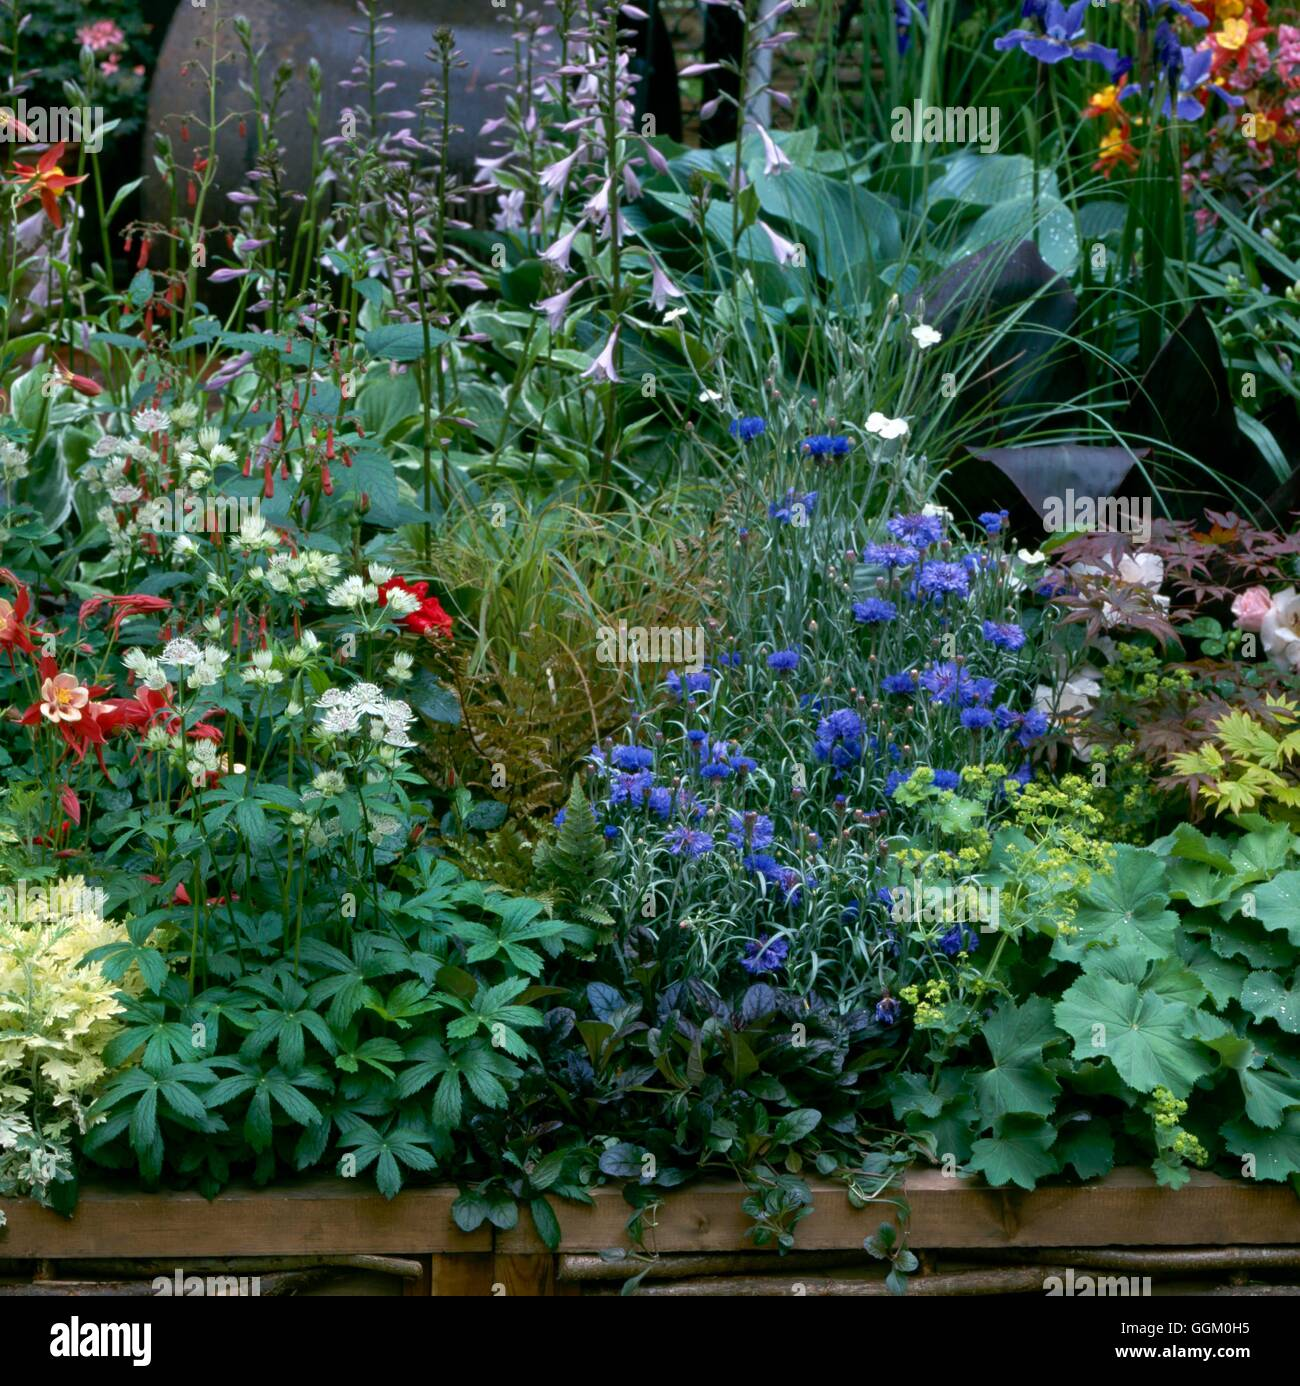 Mixed border with annuals perennials shrubs roses and bulbs stock mixed border with annuals perennials shrubs roses and bulbs please credit photos horticultural berkshire college of agri izmirmasajfo